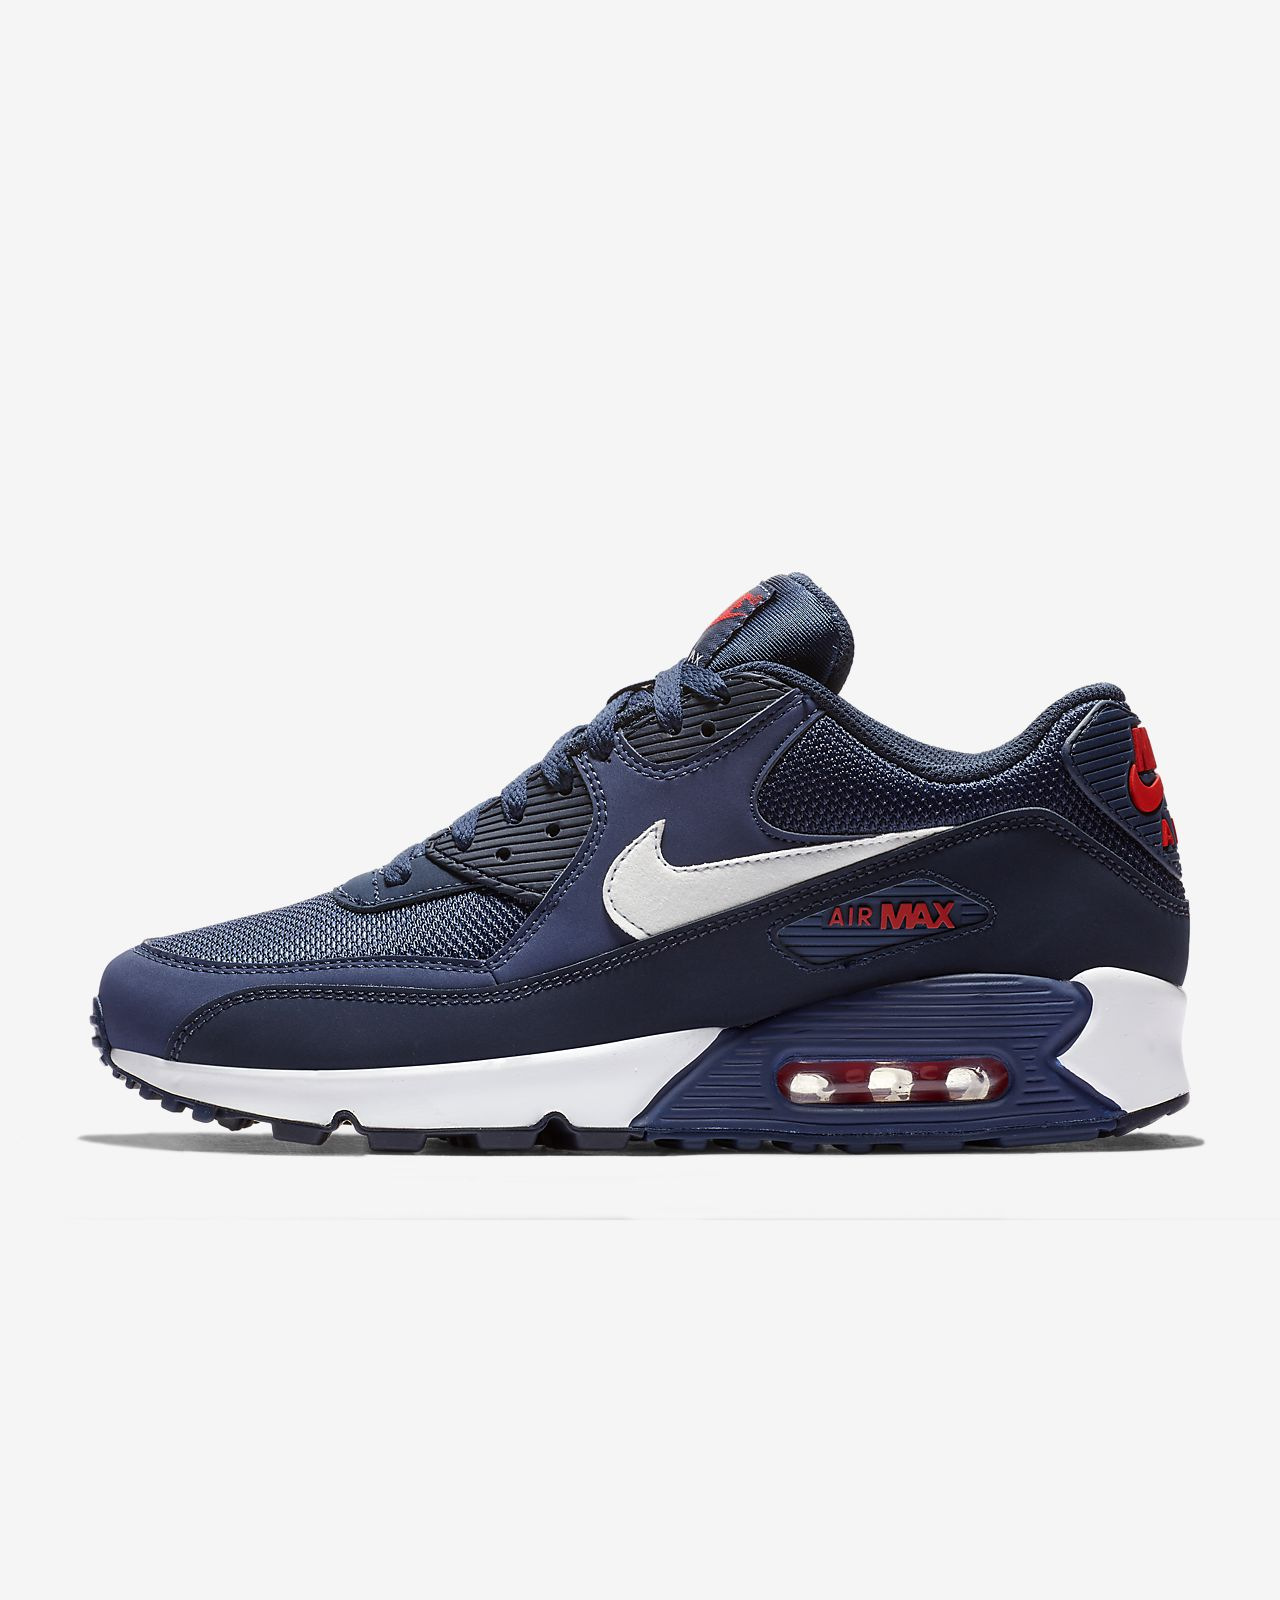 nike air max 95 midnight navy university rot Weiß